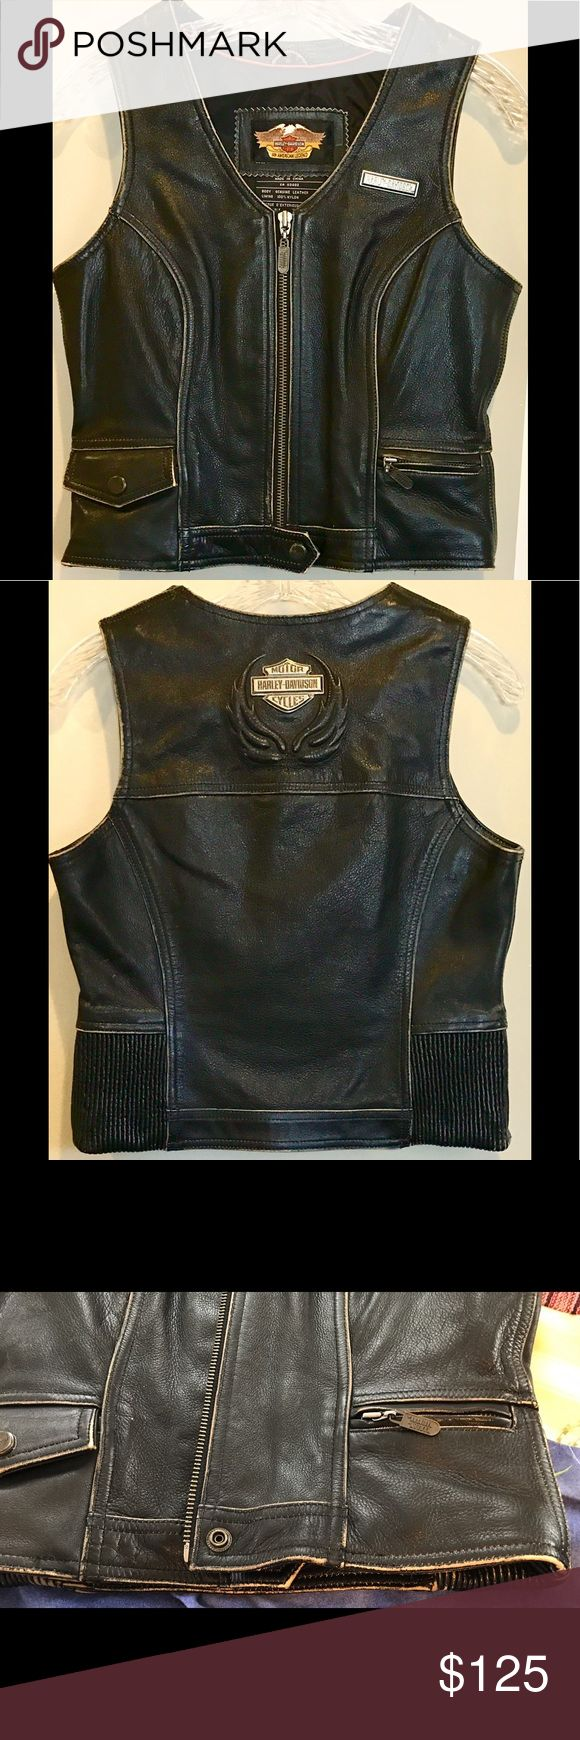 "HARLEY-DAVIDSON GENUINE LEATHER Zip Front VEST! S This is an AMAZING,  Beautiful, Heavy-duty HARLEY-DAVIDSON GENUINE LEATHER, In a ""Distressed Dark Brown"" Zip Up Vest! Women's Size Small. In GREAT Condition, Pre-Loved, but was not worn much. All zippers & Snaps work great. A Great-Fitting Vest, it never had time to fit to my shape. Nylon Lined, Rugged. AUTHENTIC H-D Vest, a Beauty! At upper center back, H-D Metal Logo with Leather Flames surrounding it. If you would like more PICS, Just Ask…"